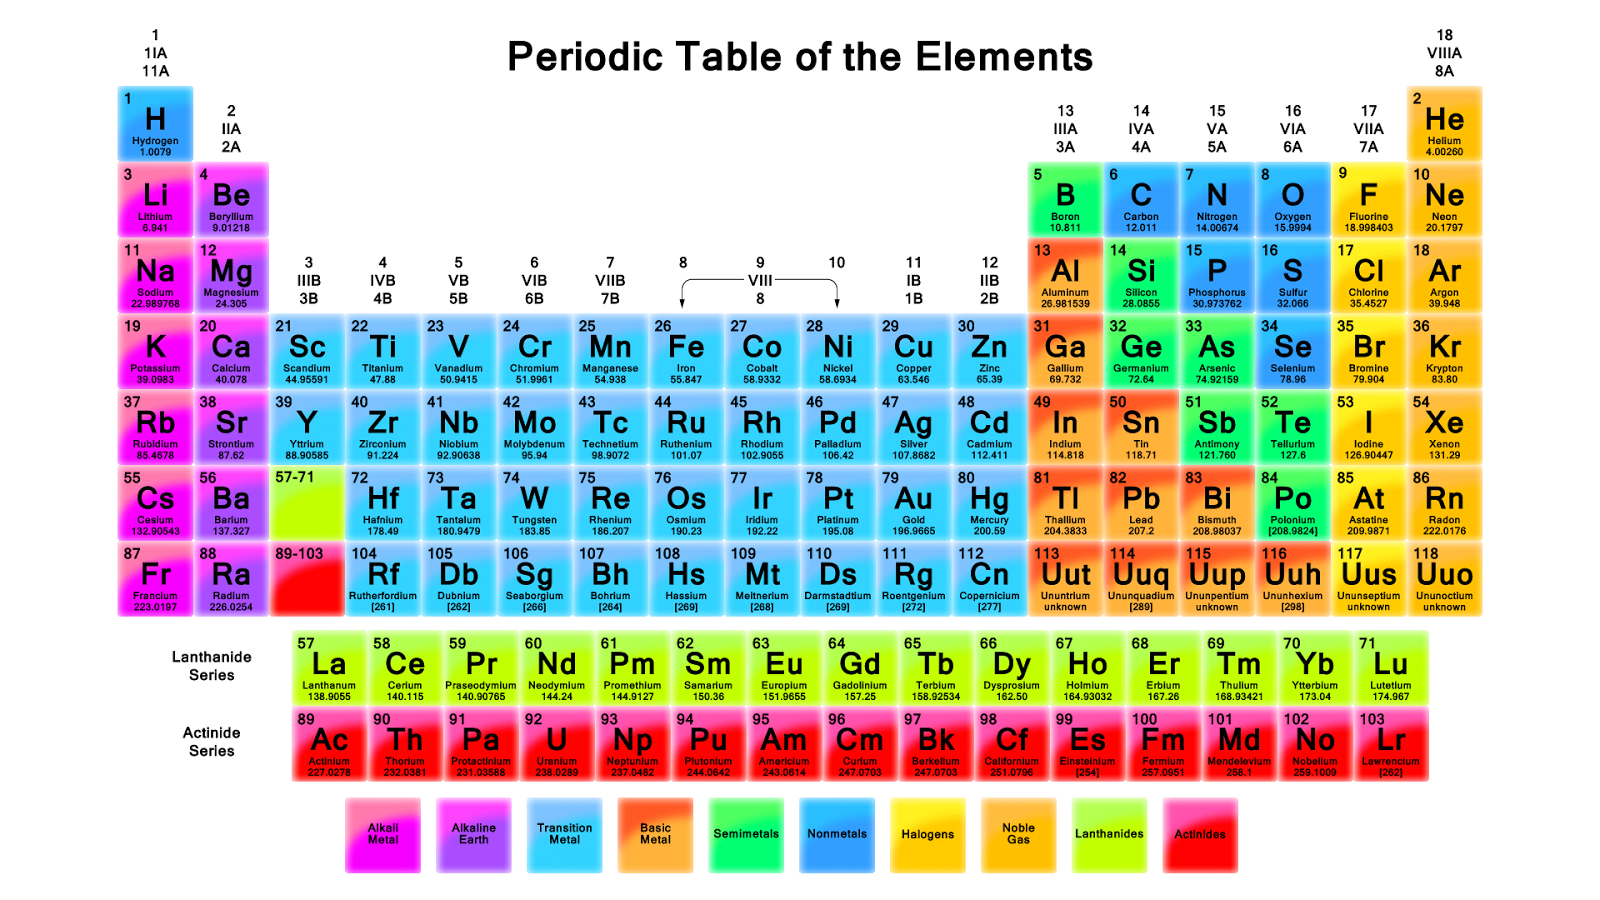 Giveaway no queue why queue noq bookstore is here he can now memorise all the elements their codes their atomic numbers he sings this silly periodic table of elements song by tom lehrer more than 10 gamestrikefo Choice Image